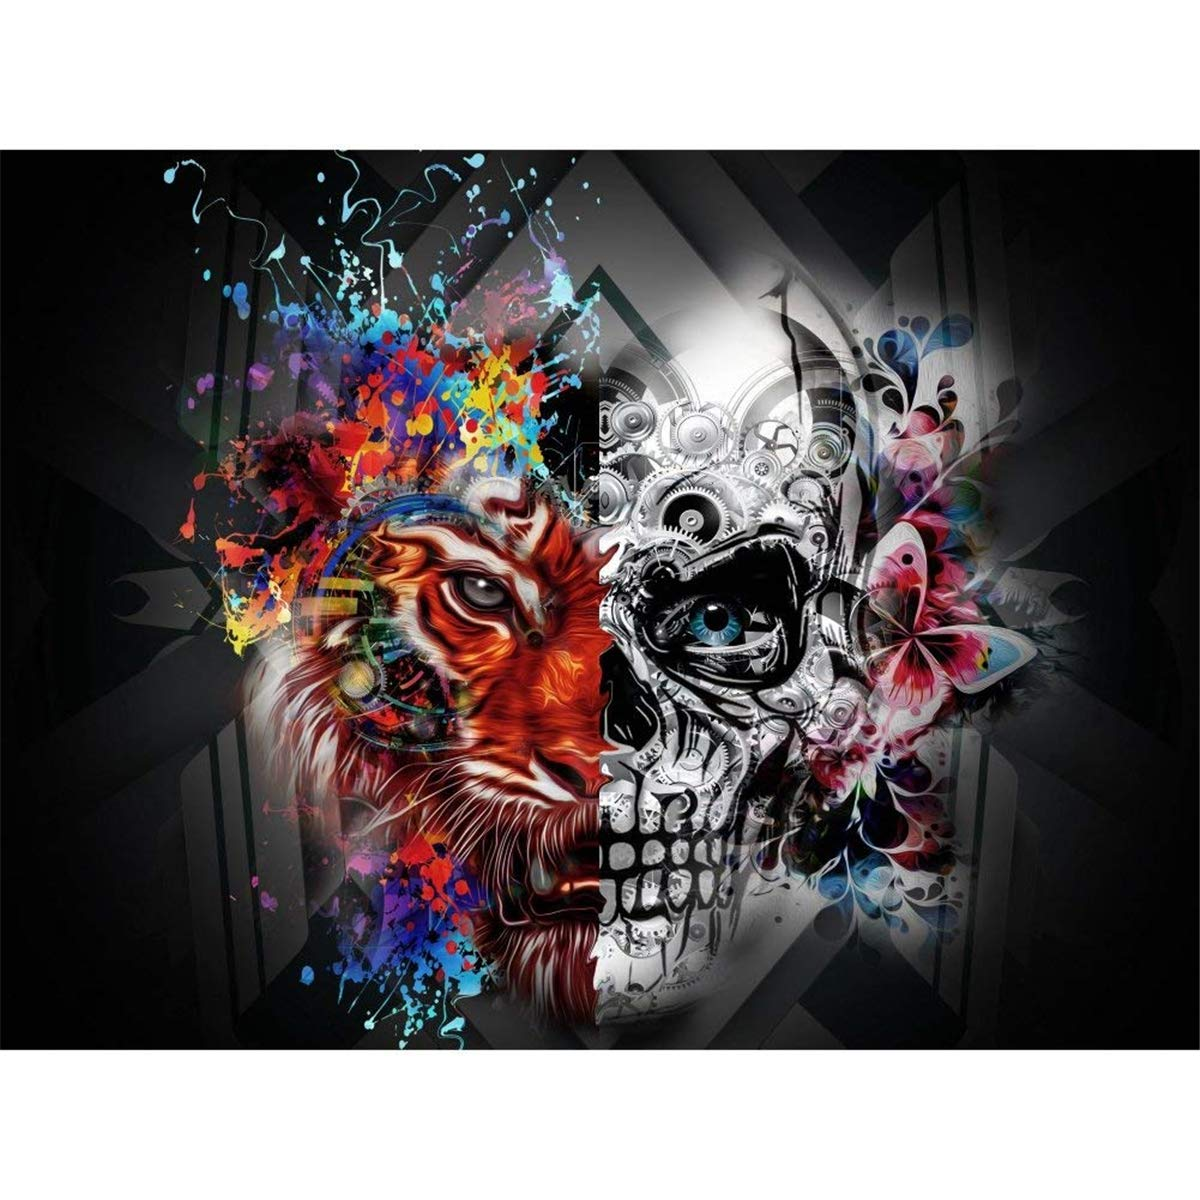 DIY Cross Stitch Crystal Mosaic Picture Artwork for Home Wall Decor Gift 40x30cm 5D Diamond Painting Kits for Adults Skull Head Full Drill